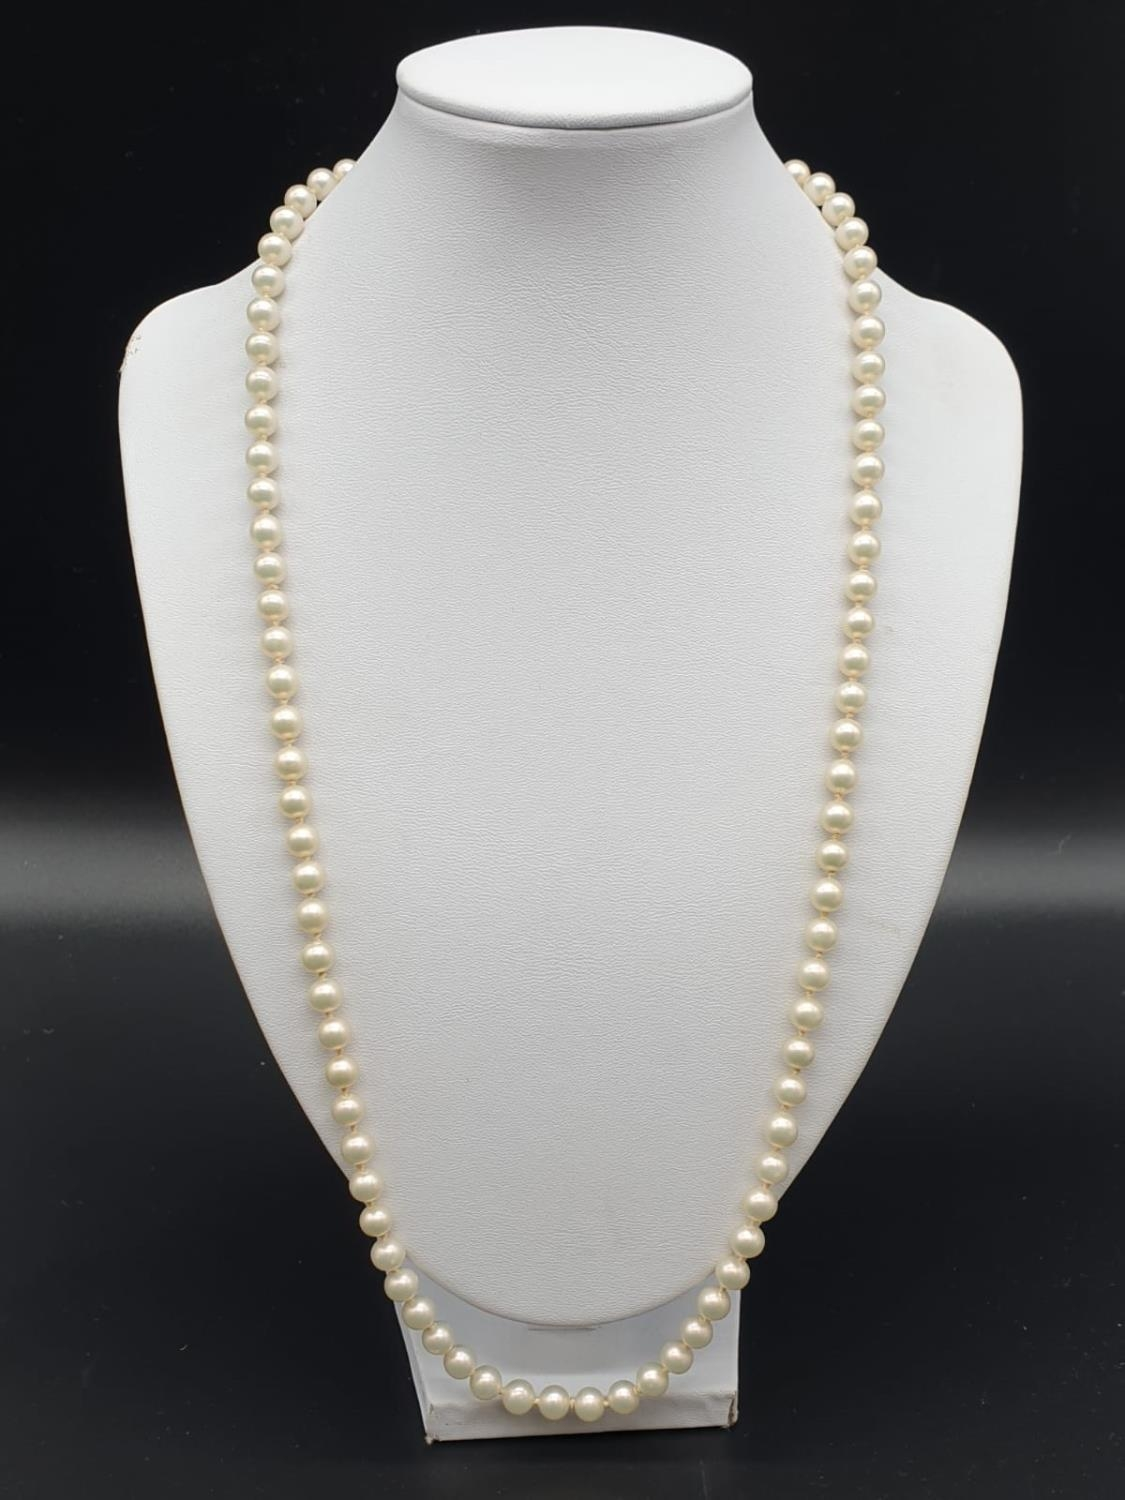 A 60cm String or Cultured Pearls 30g - Image 3 of 5